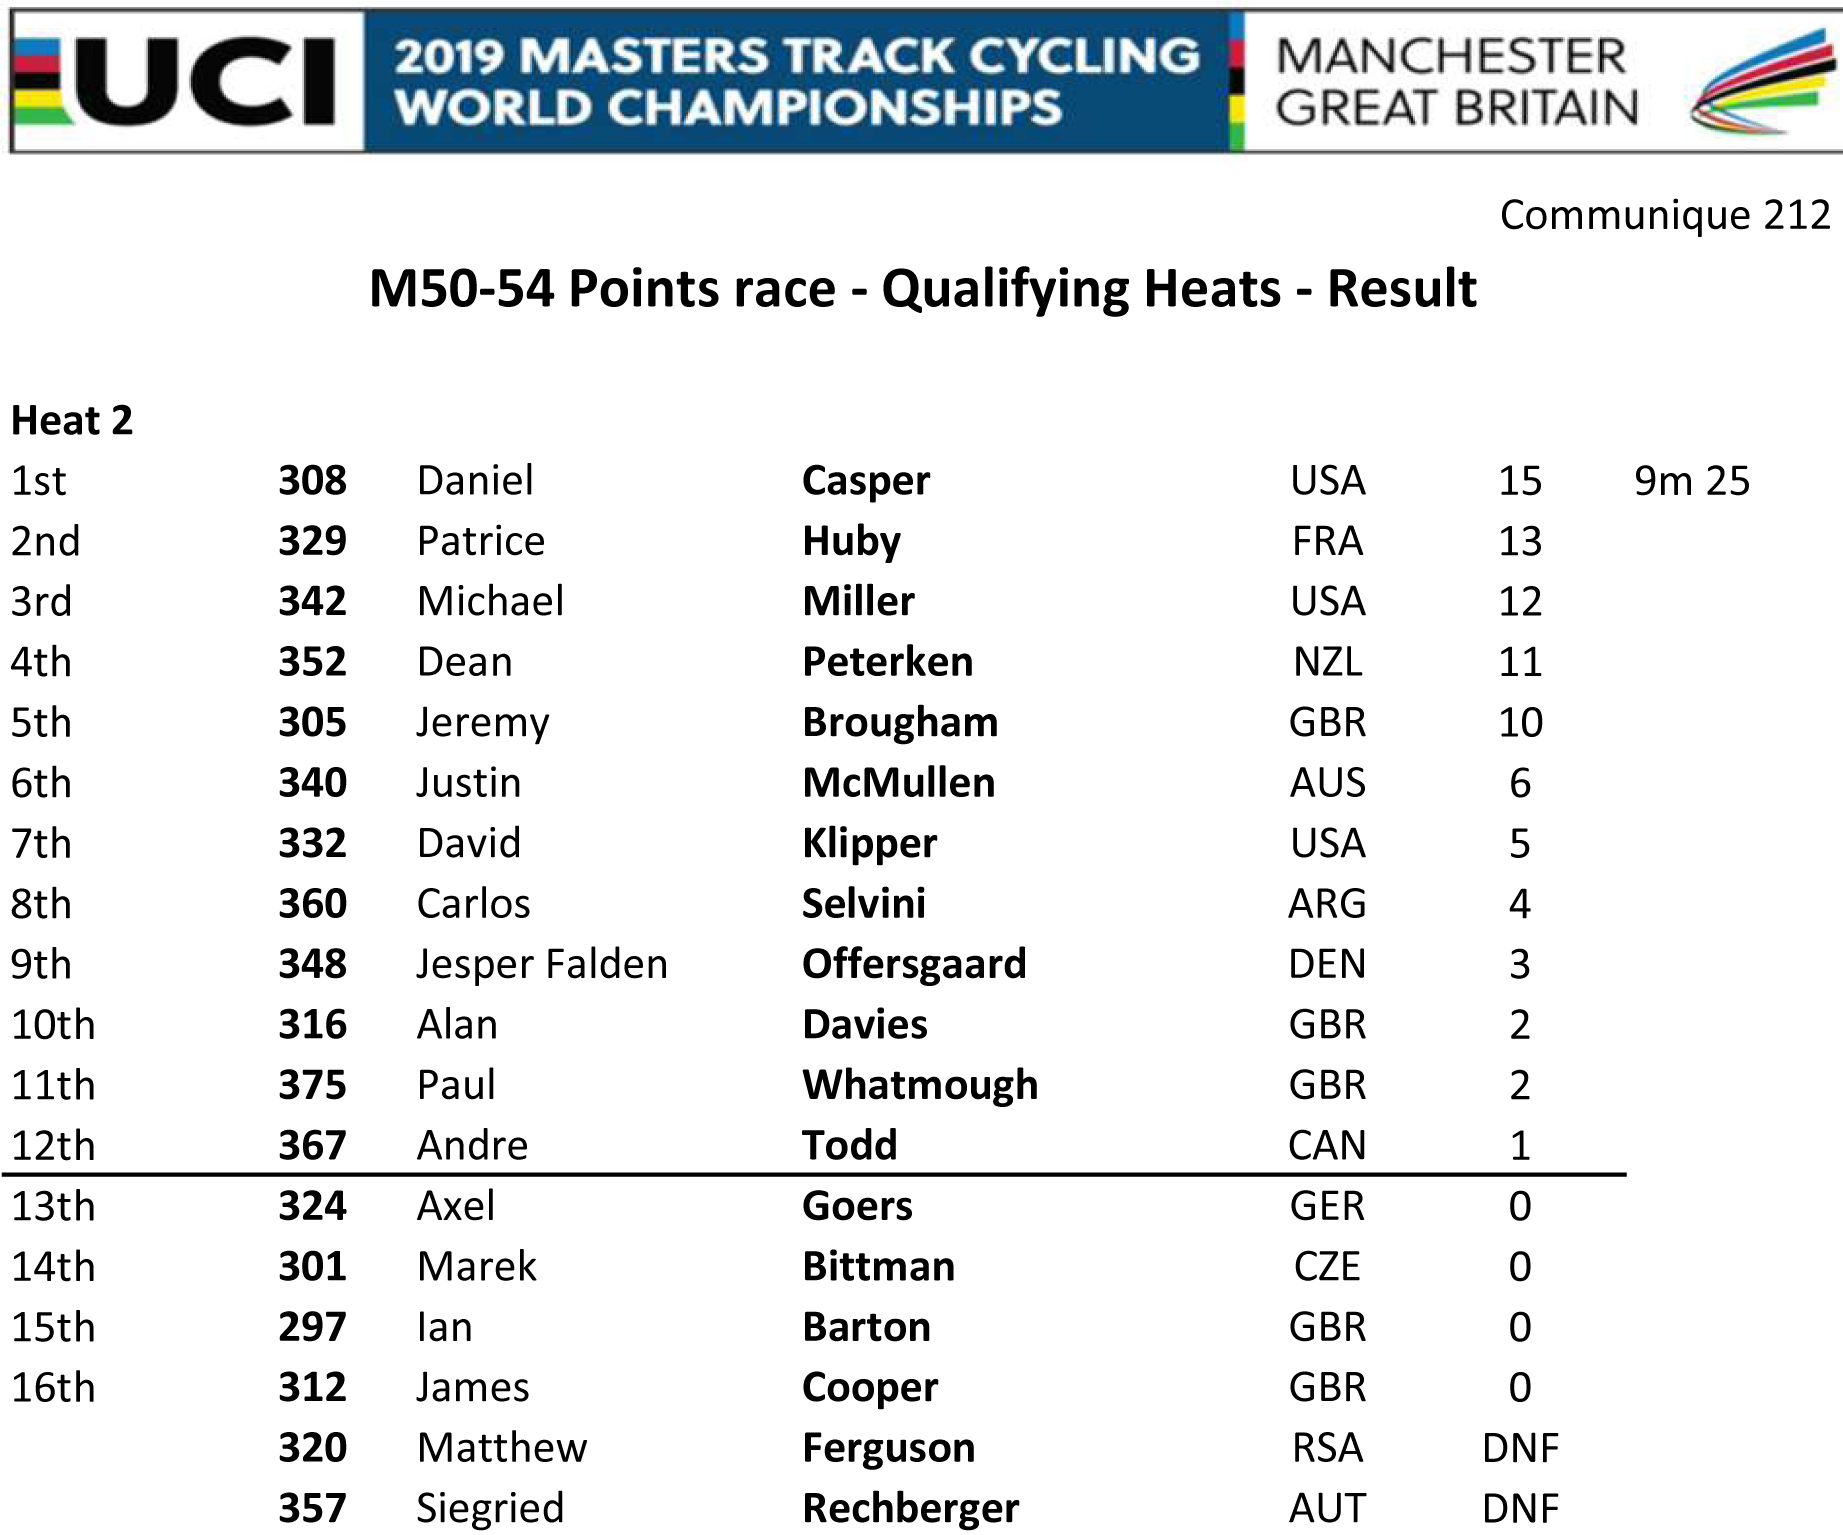 M5054 POINTS RACE QUAL HEAT 2 RESULT